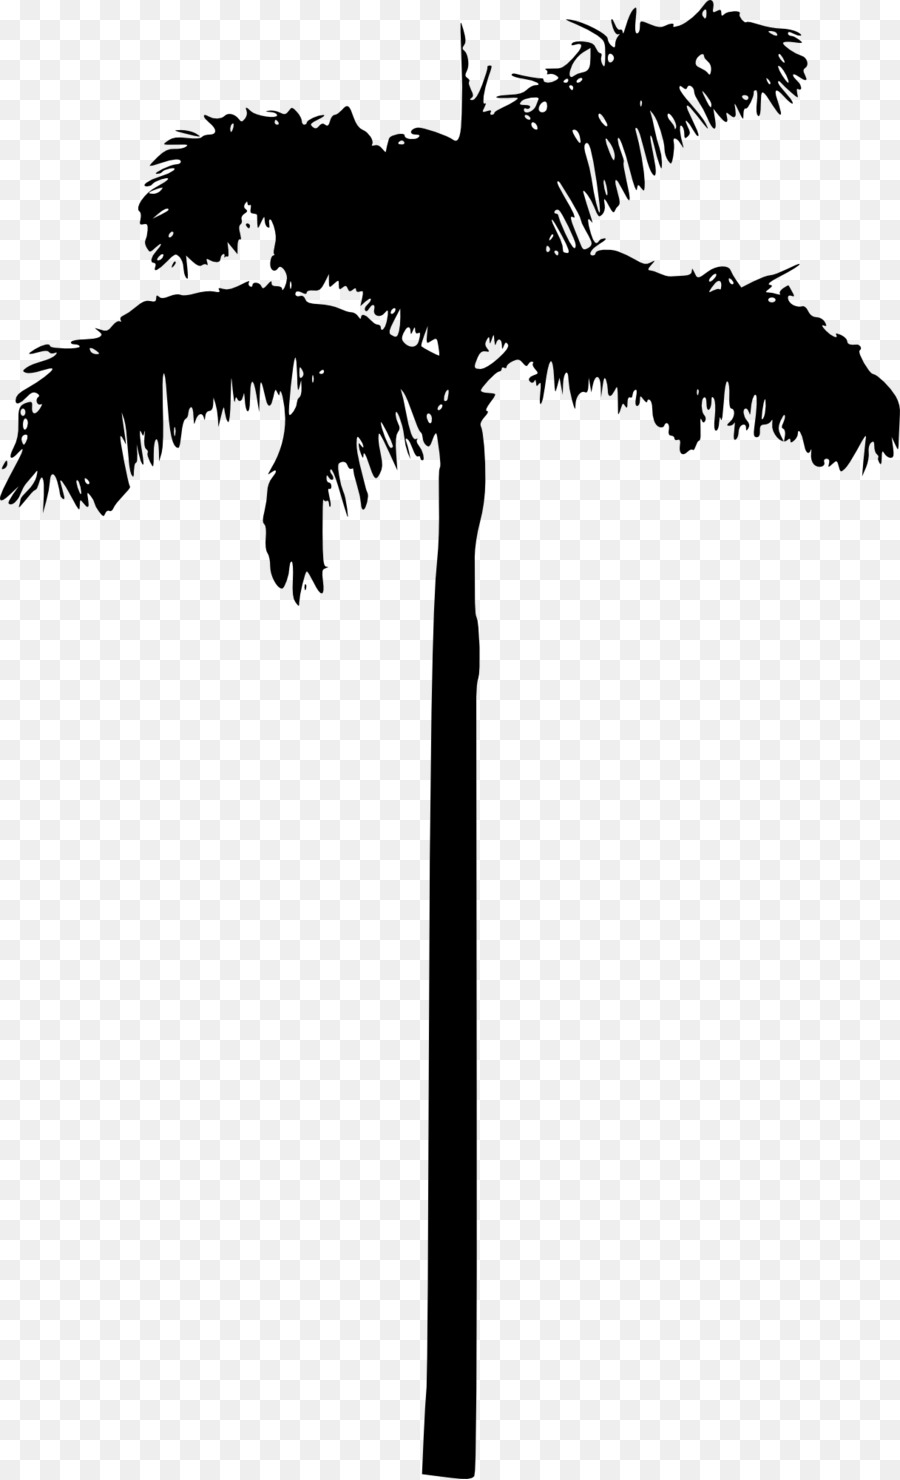 Black And White Palm Tree Wallpaper.